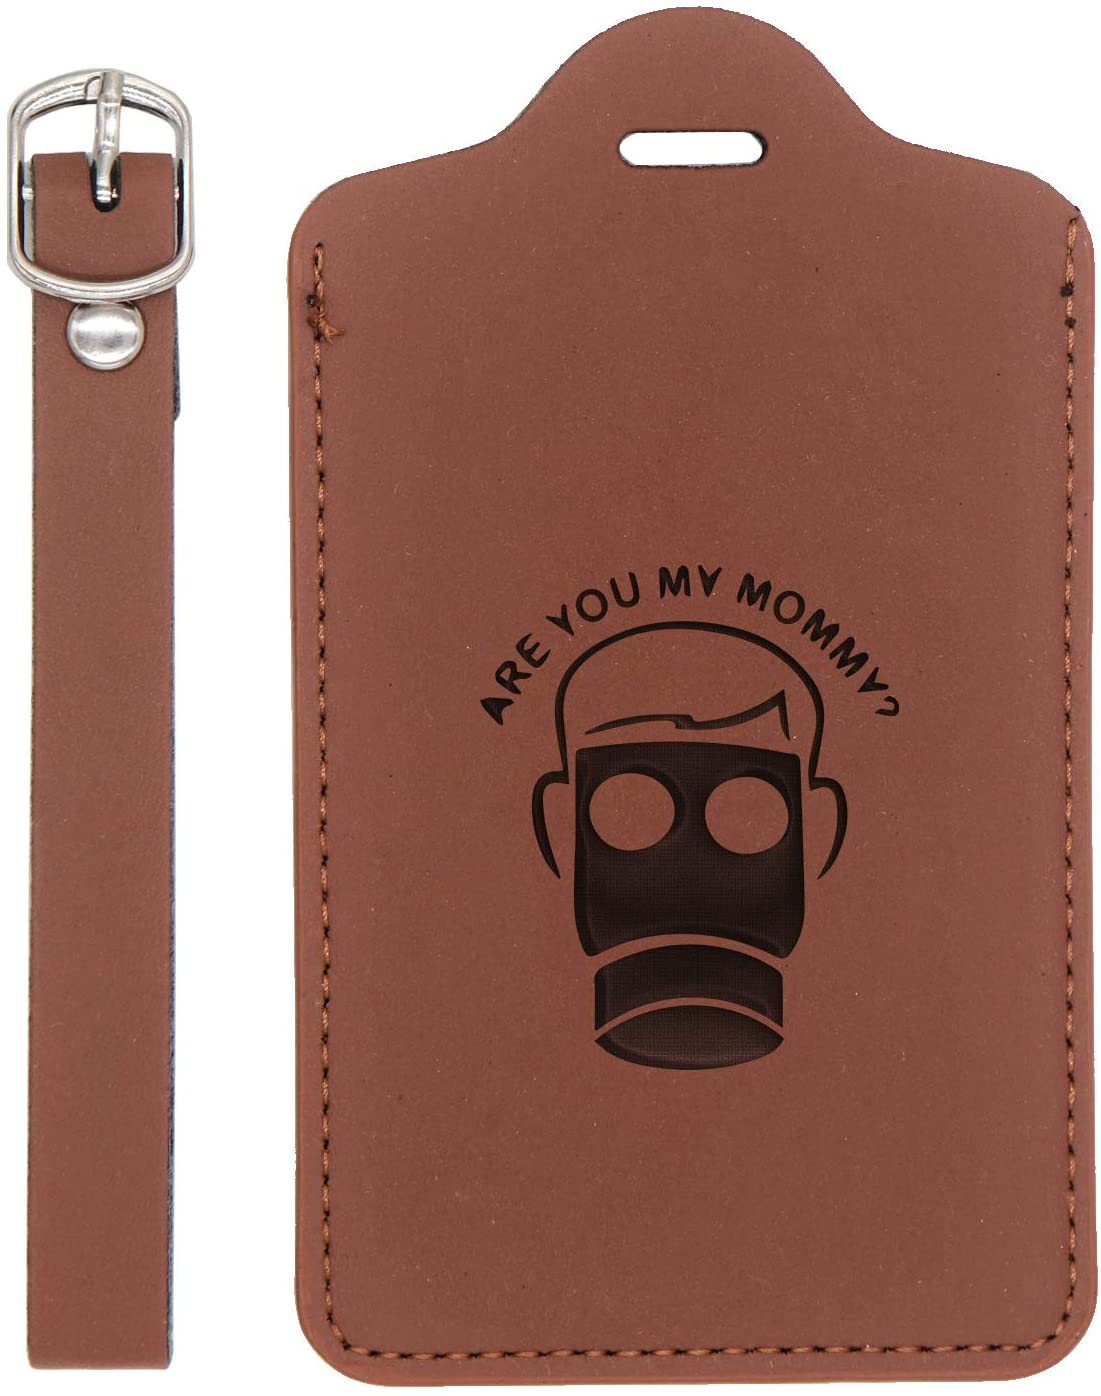 Doctor Who Are You My Mommy Engraved Synthetic Pu Leather Luggage Tag (Chestnut Brown) - Handcrafted By Mastercraftsmen - For Any Type Of Luggage